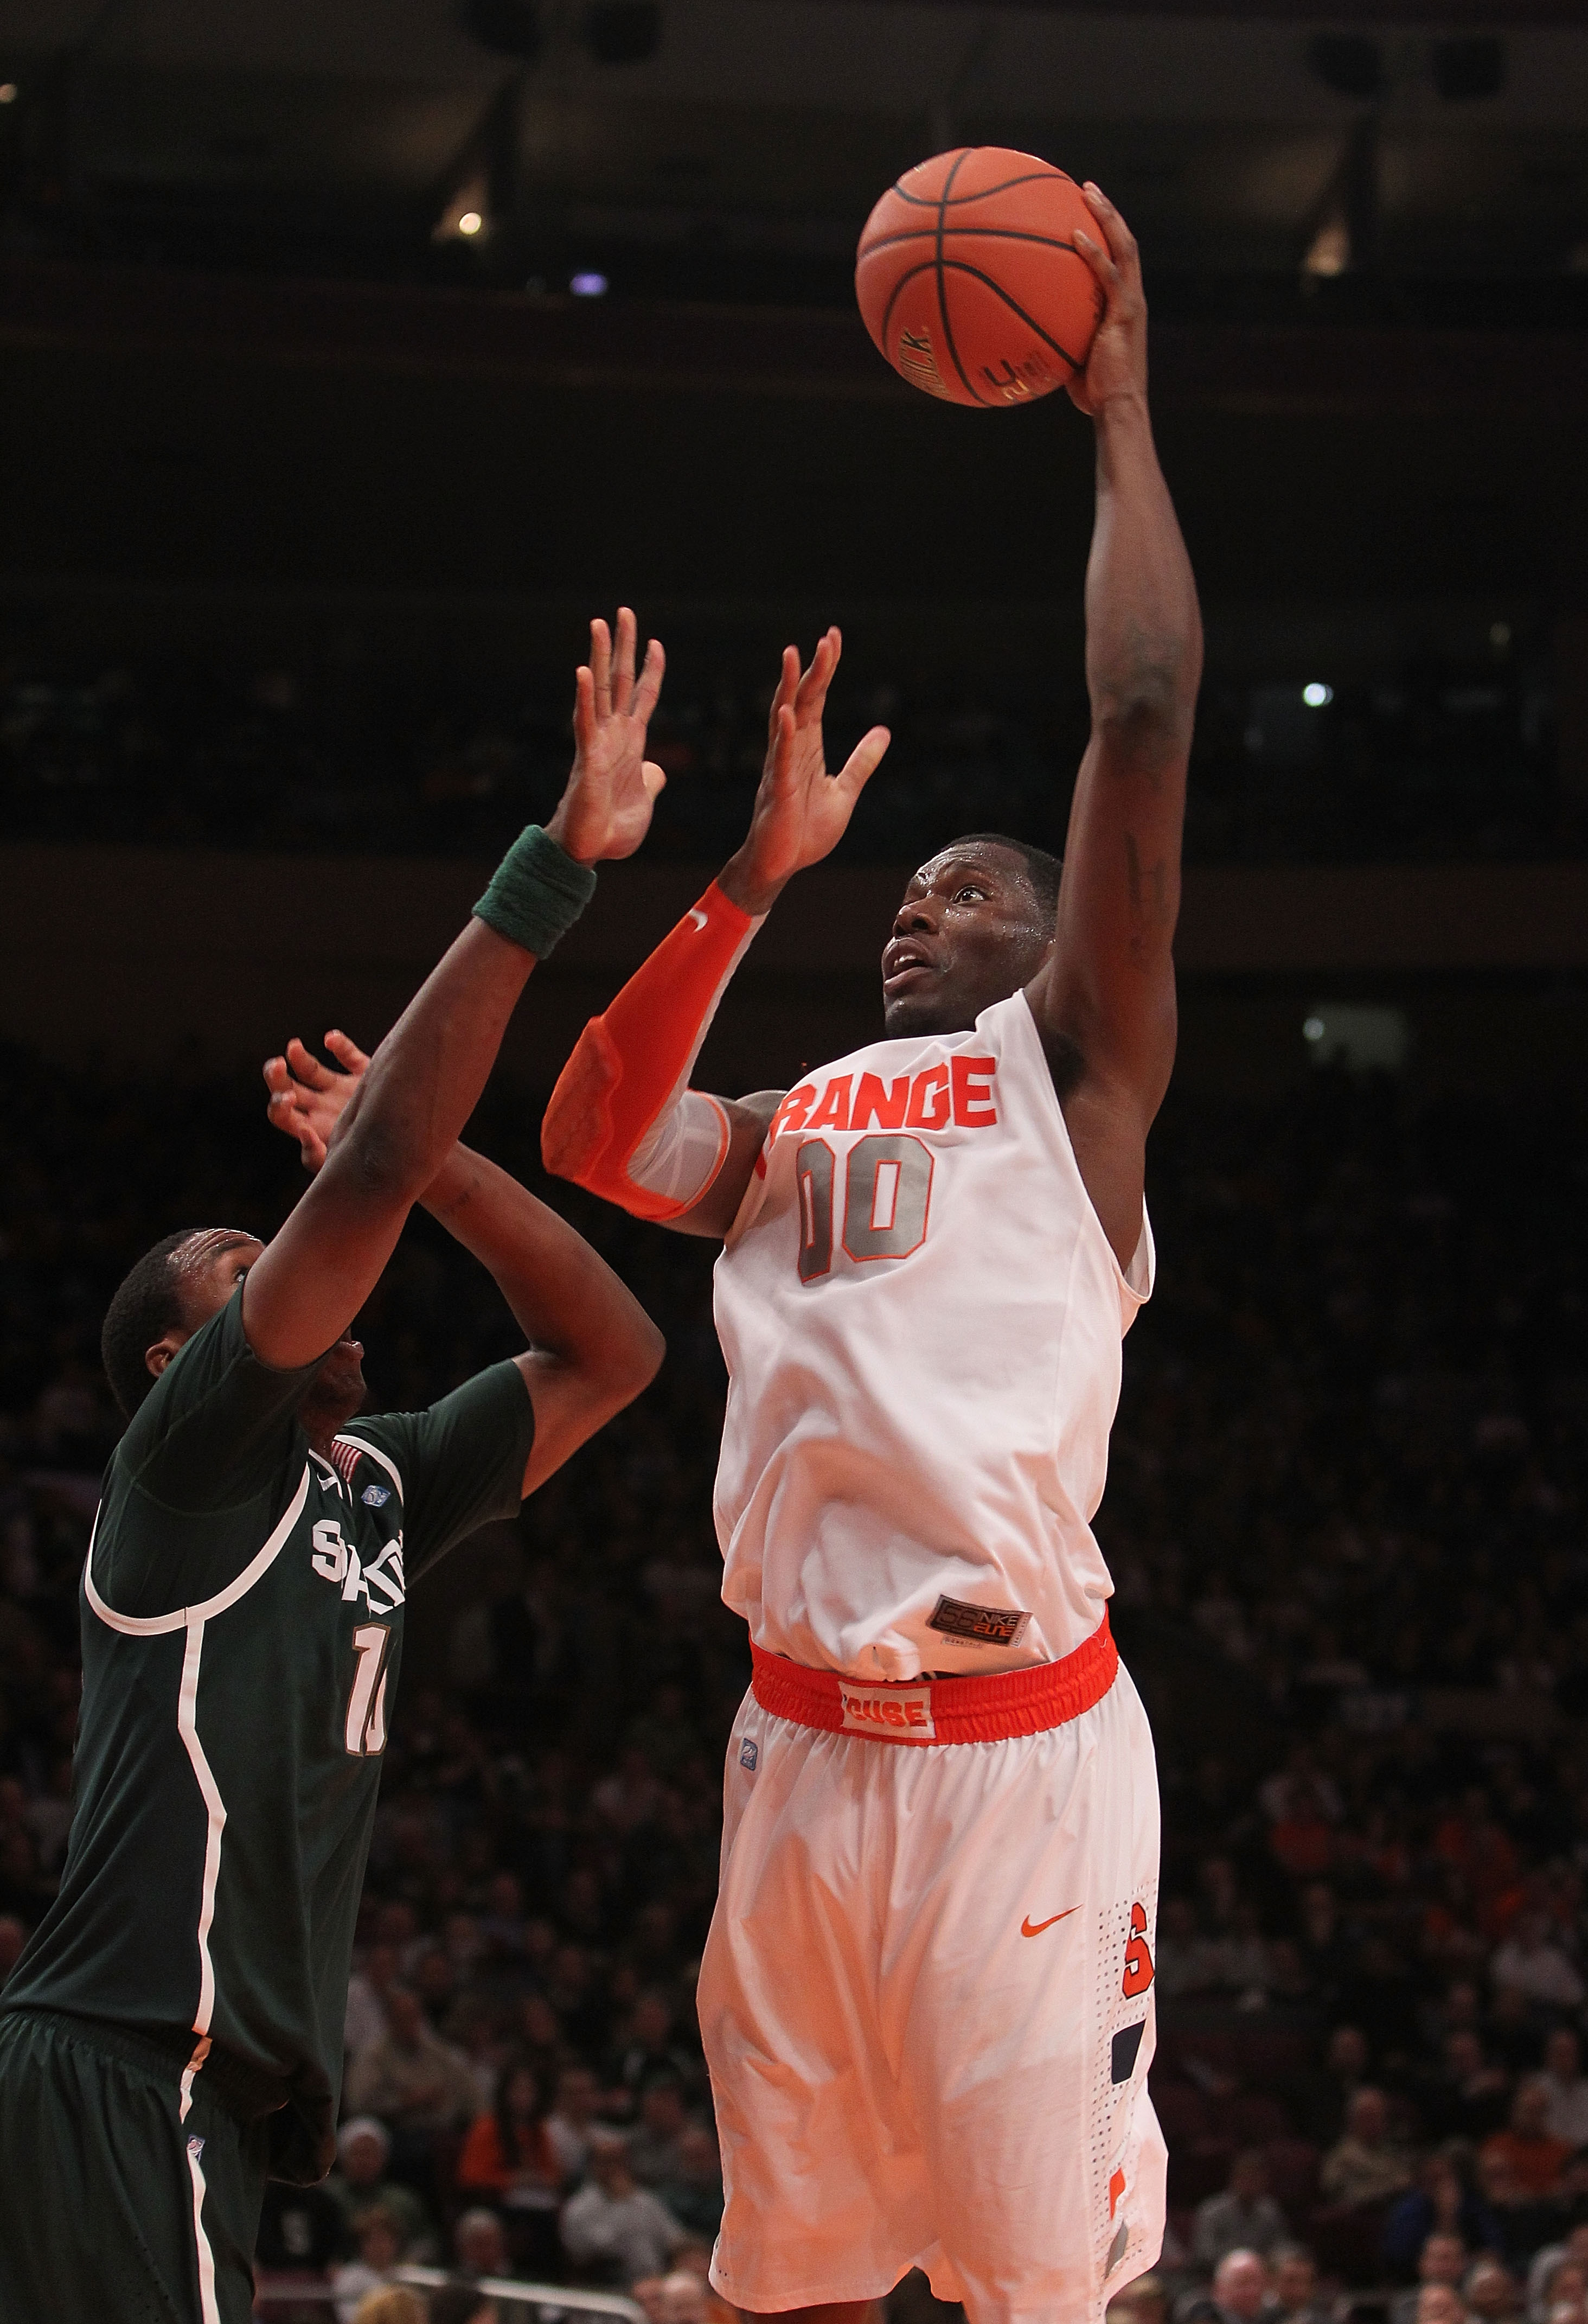 NEW YORK, NY - DECEMBER 07:  Rick Jackson #00 of Syracuse Orange shoots the ball against the Michigan State Spartans during their game at the Jimmy V Classic at Madison Square Garden on December 7, 2010 in New York City.  (Photo by Nick Laham/Getty Images